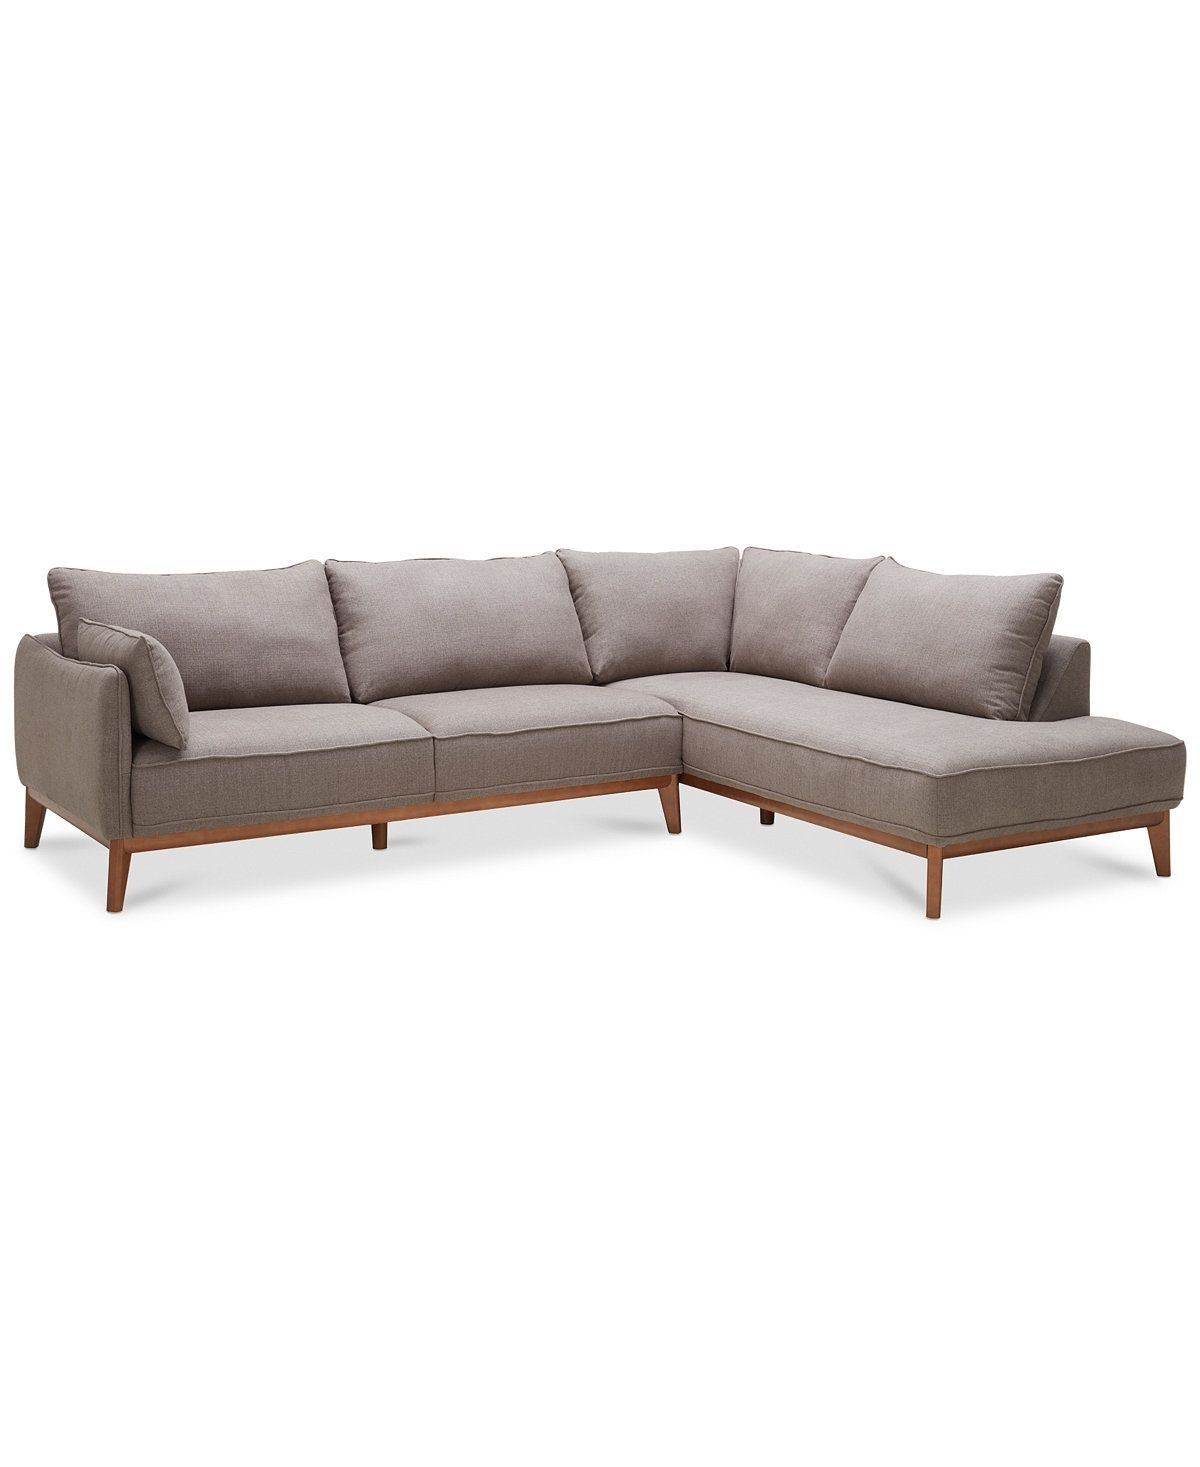 Jollene 113 2-Pc. Sectional, Created For Macy's | Sofas | Pinterest pertaining to Turdur 2 Piece Sectionals With Raf Loveseat (Image 10 of 30)